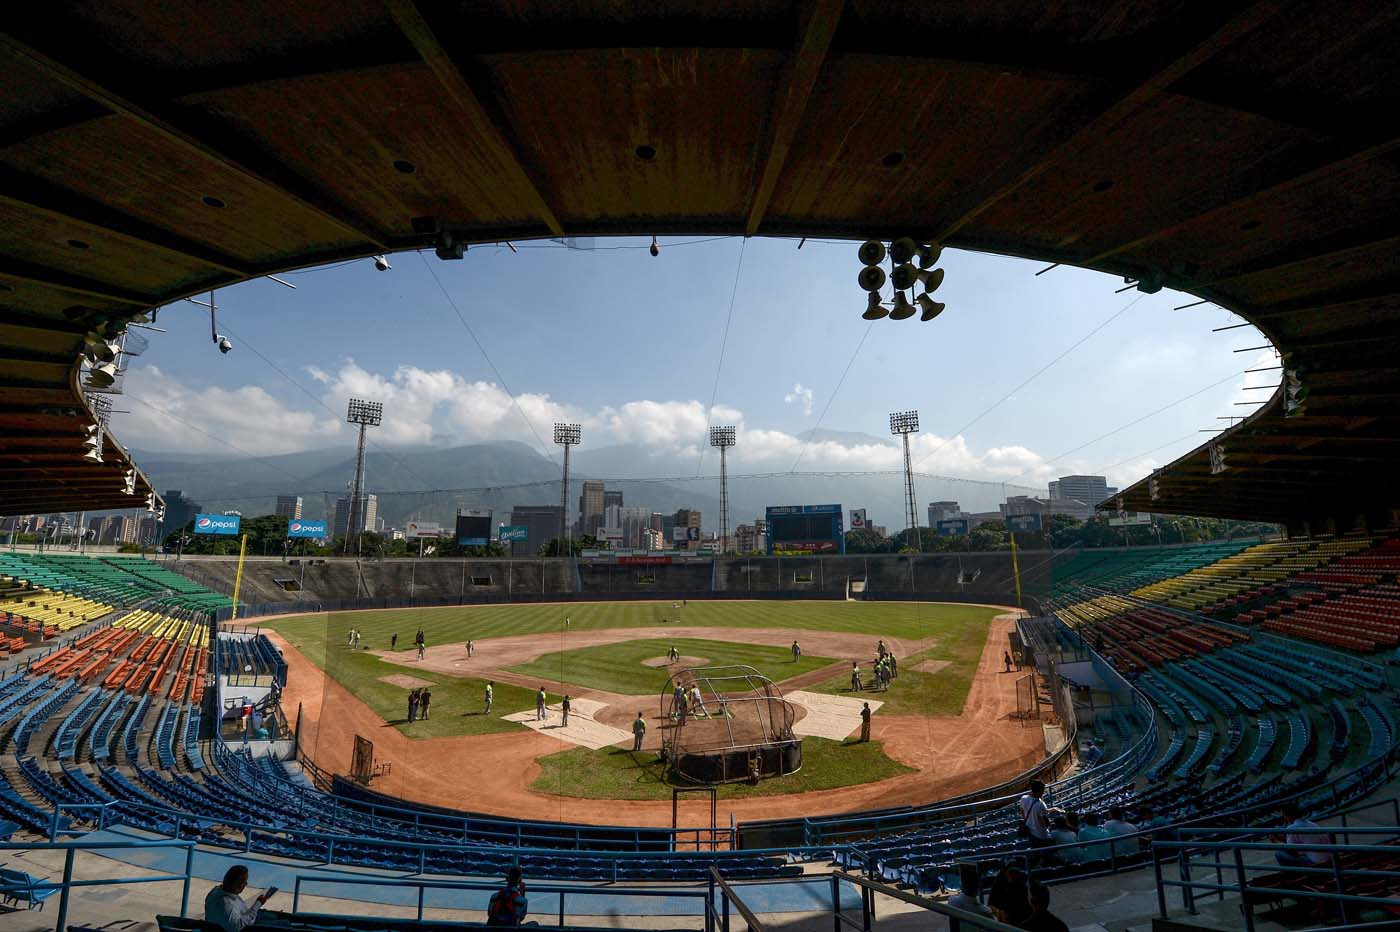 View of the Universitario stadium in Caracas on September 18, 2016. While baseball is Venezuela's national sport, some fans are angry that the government, given the severity of the economic crisis and the political tension, will spend nearly ten million dollars on organizing the upcoming Winter League rather than on imports of food and medicine. / AFP PHOTO / FEDERICO PARRA